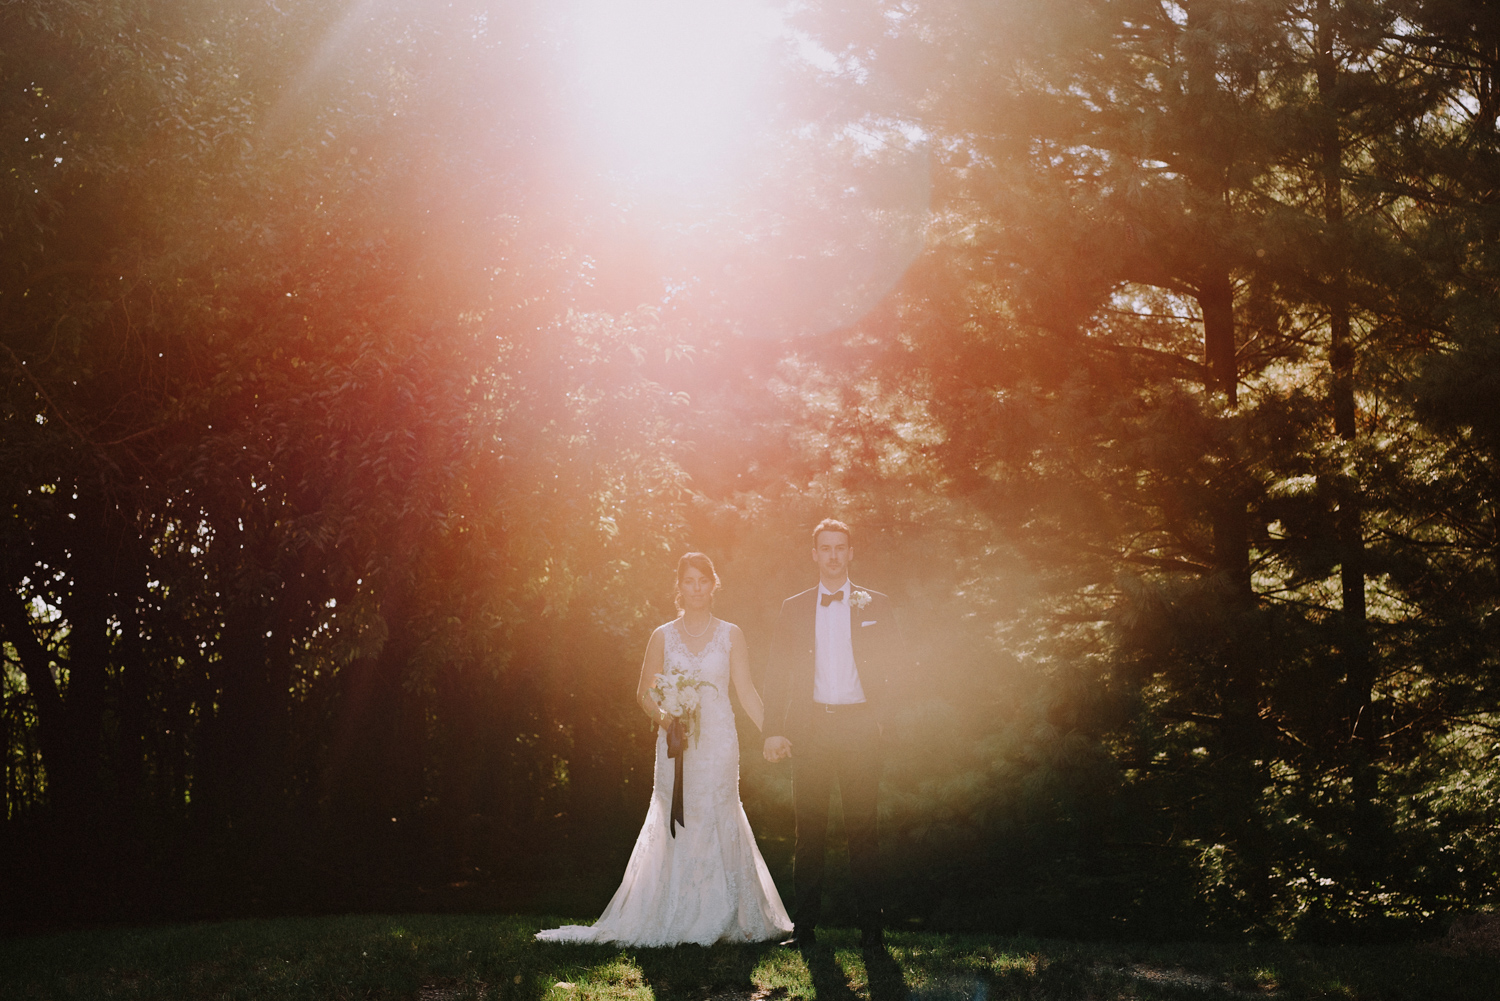 Sunset Backyard Wedding Photography